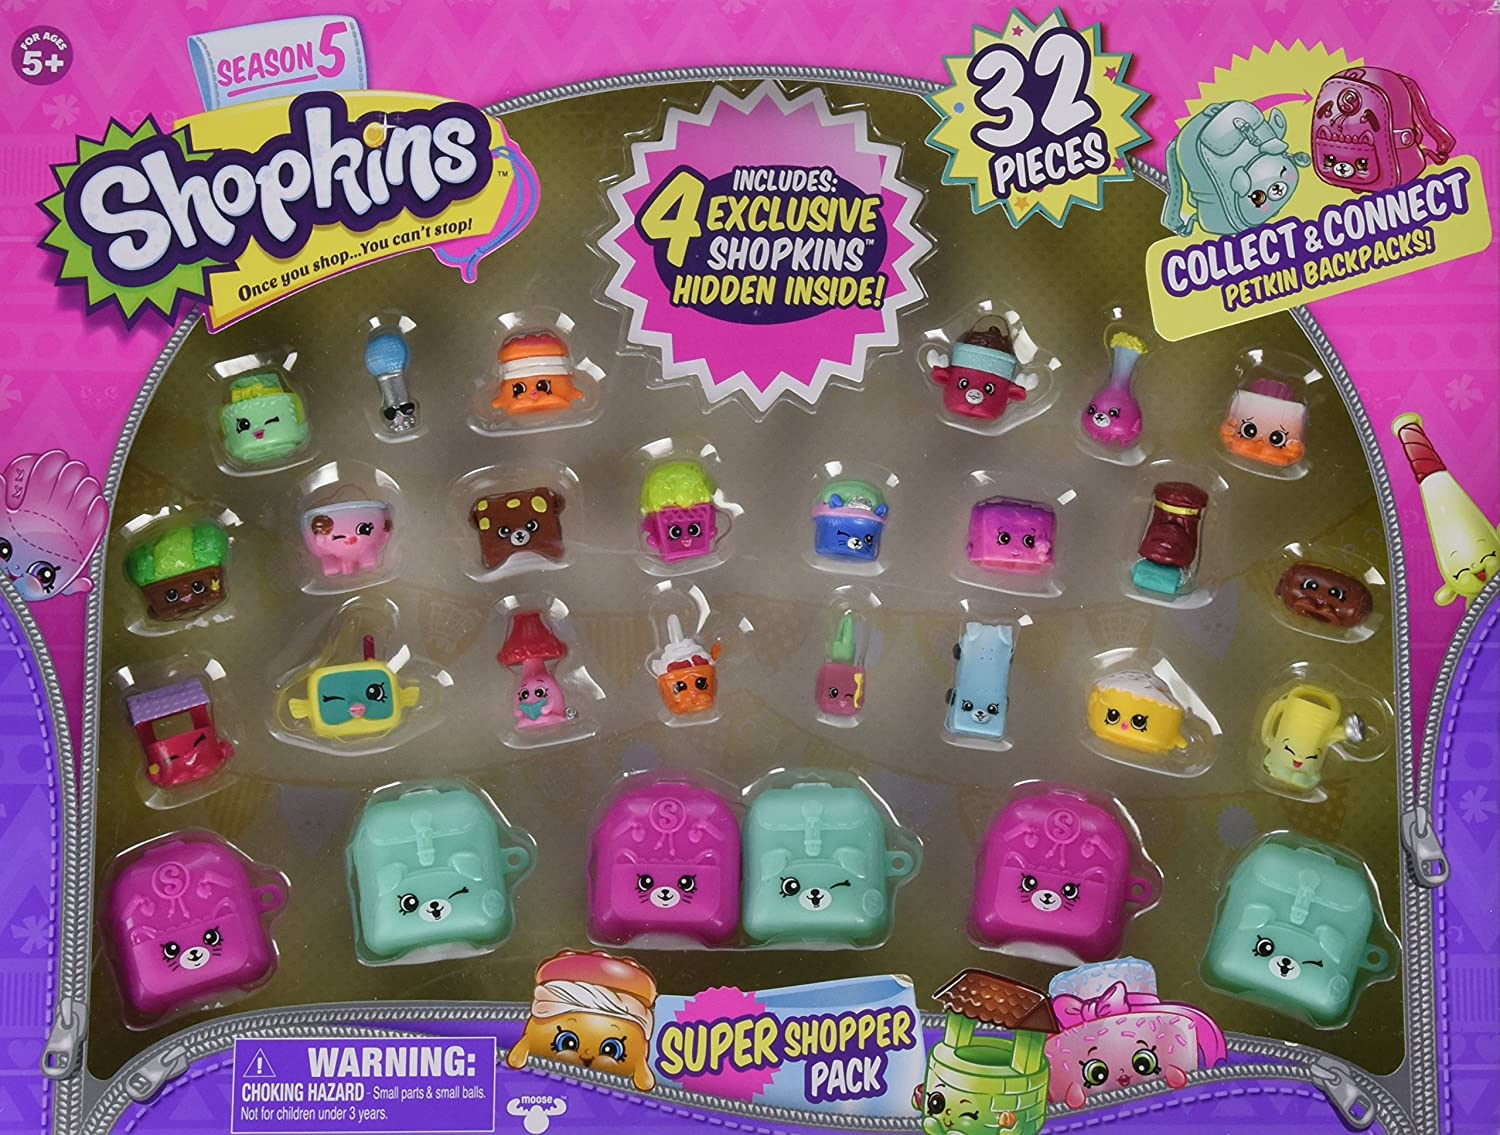 Top 12 Best Shopkins Toys (2020 Reviews & Buying Guide) 5